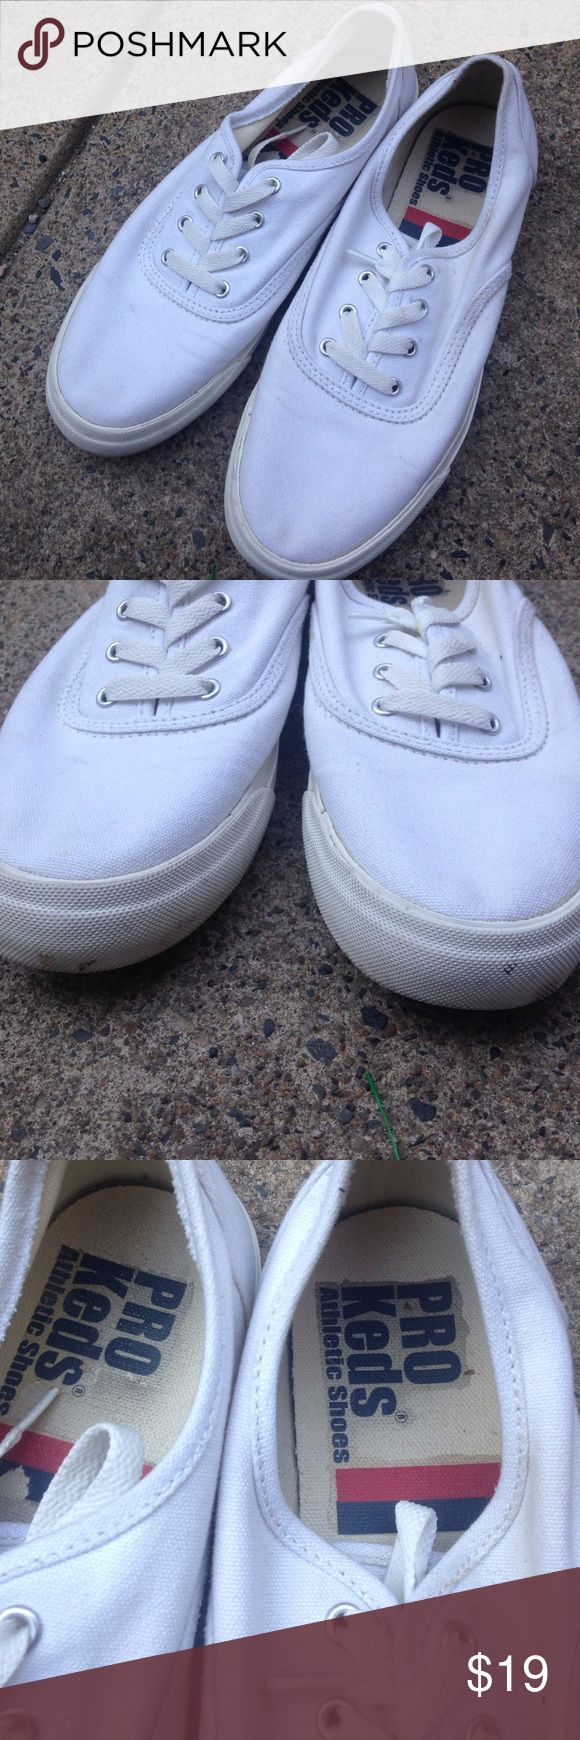 All white pro keds 8.5 I love these but they're kinda big on me. Little scuffing on  base of rubber sole. Could be thrown in washer. No ripping, no holes, great bottom. Keds Shoes Sneakers